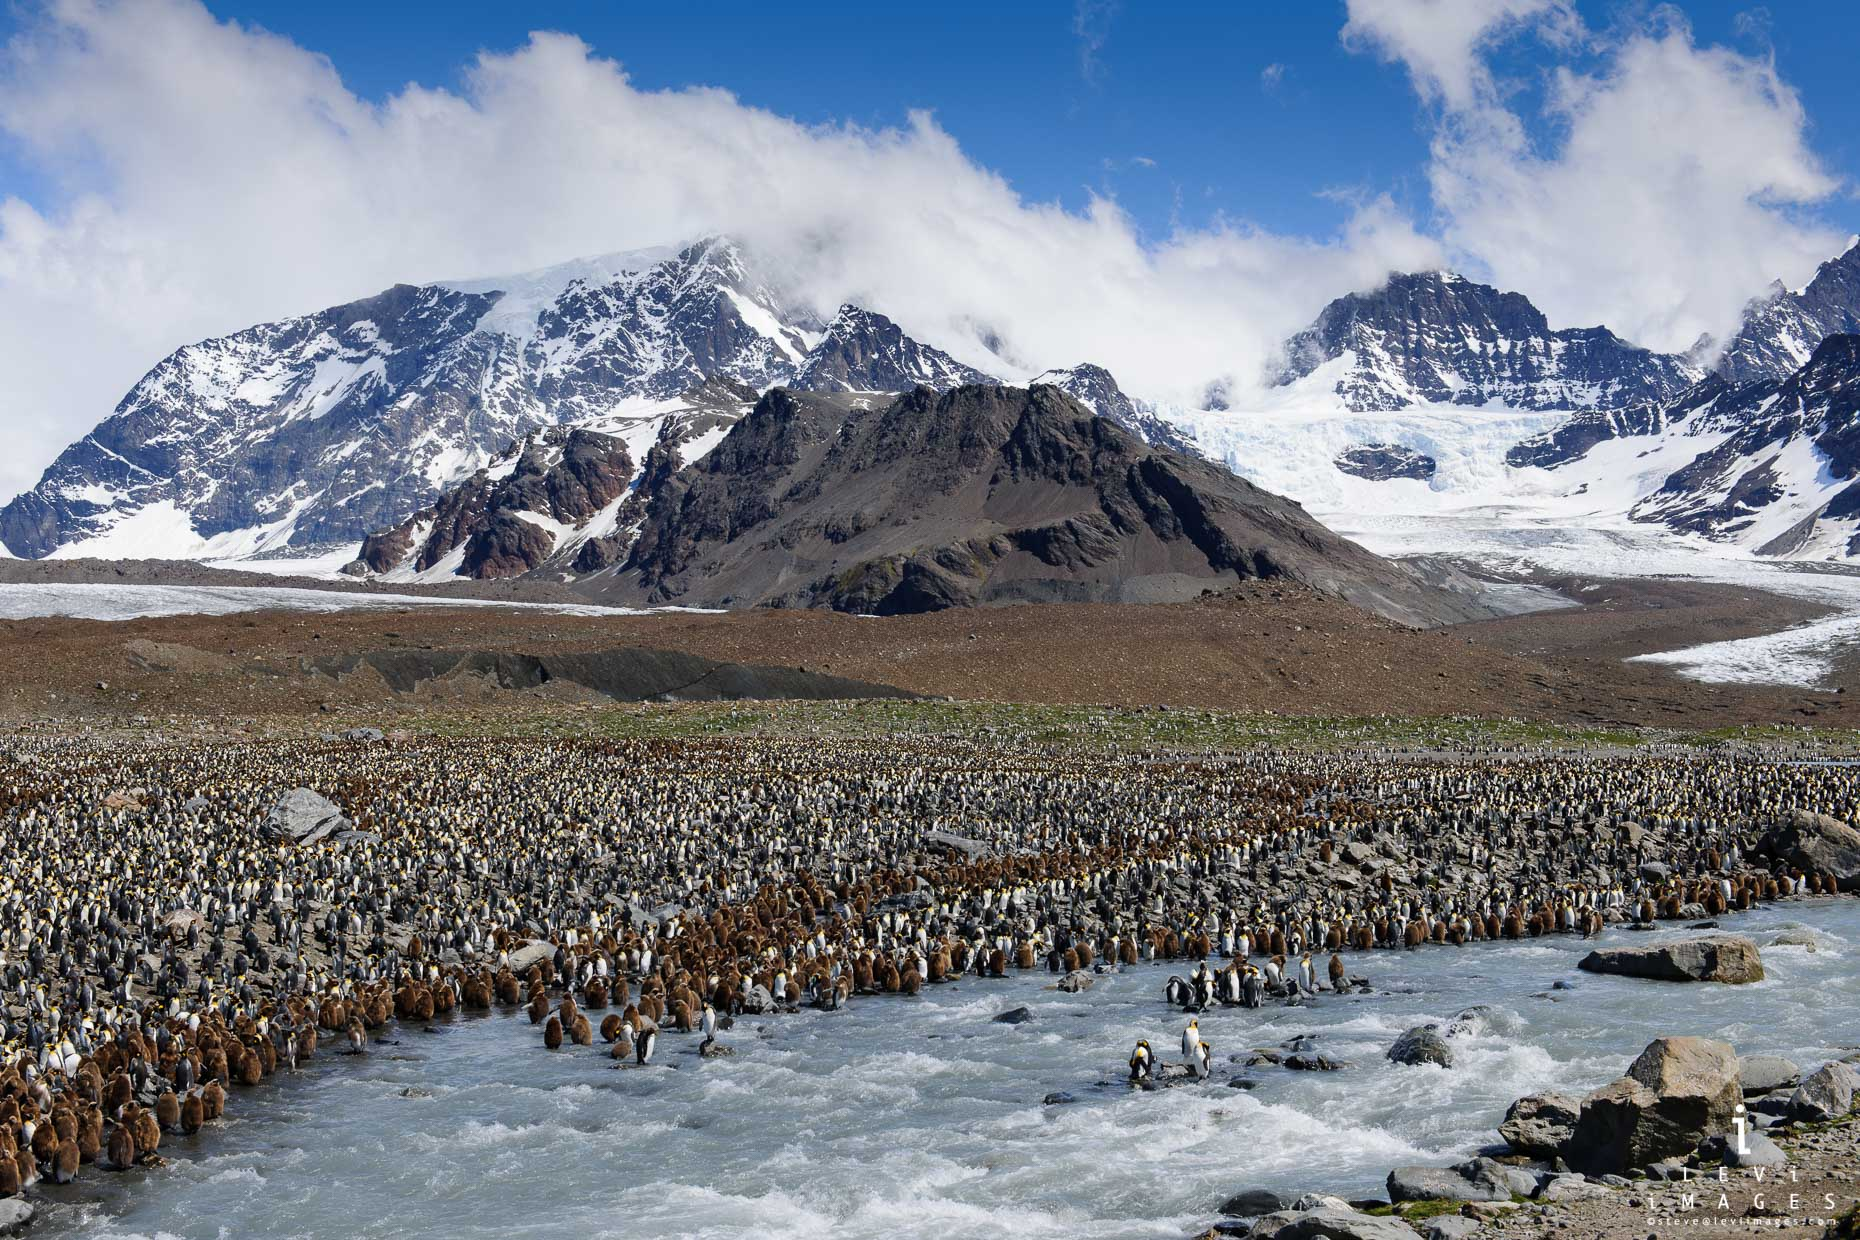 Overview of king penguin (Aptenodytes patagonicus) colony with mountains behind. Saint Andrews Bay, South Georgia Island